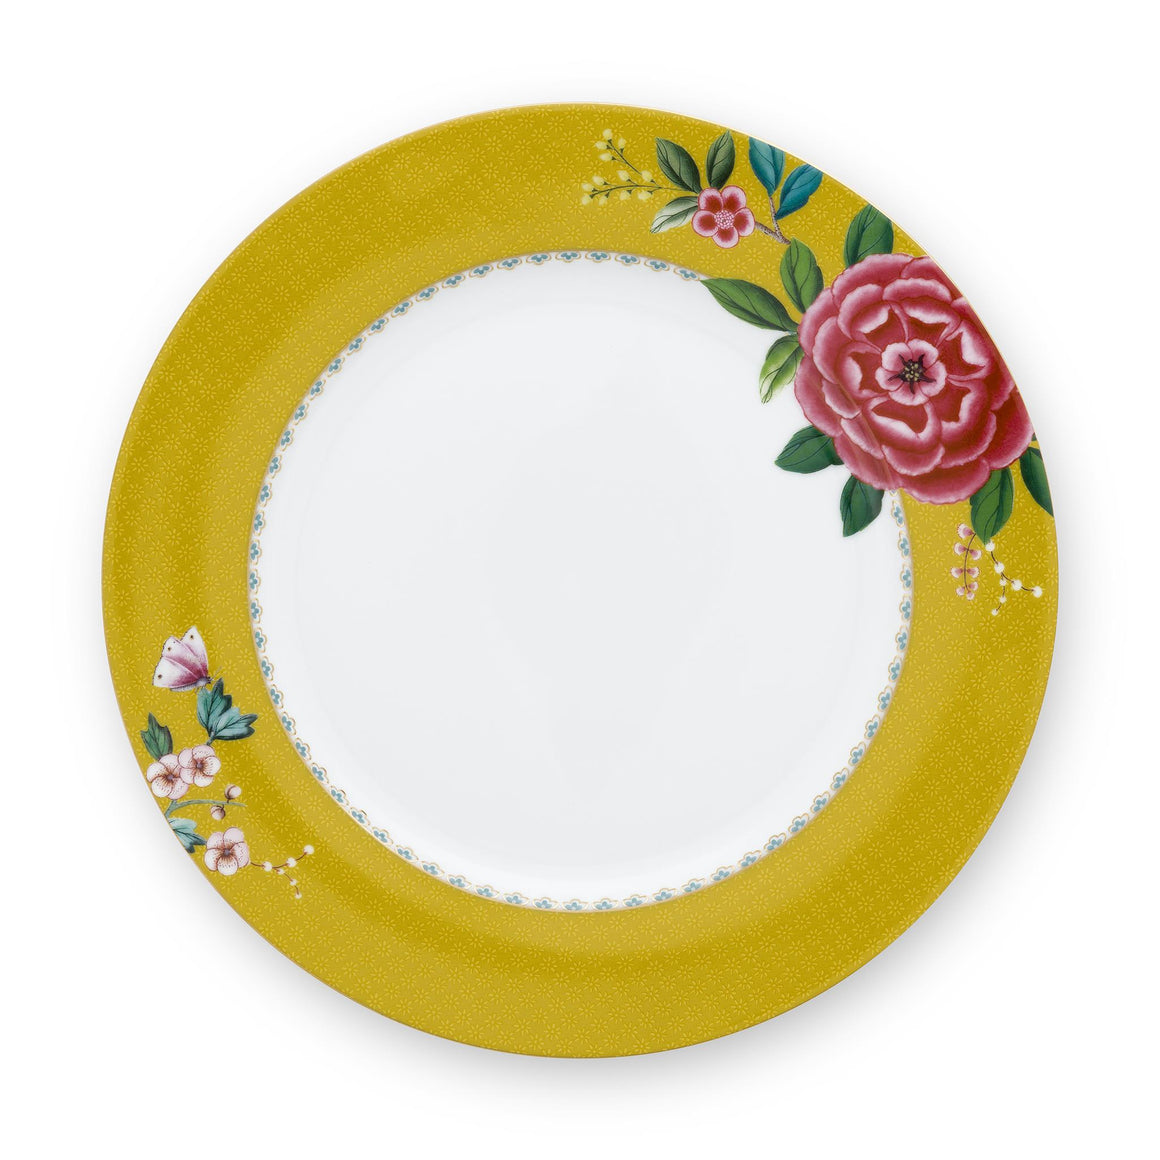 Blushing Birds Dinner Plate 26.5 Cm, Yellow